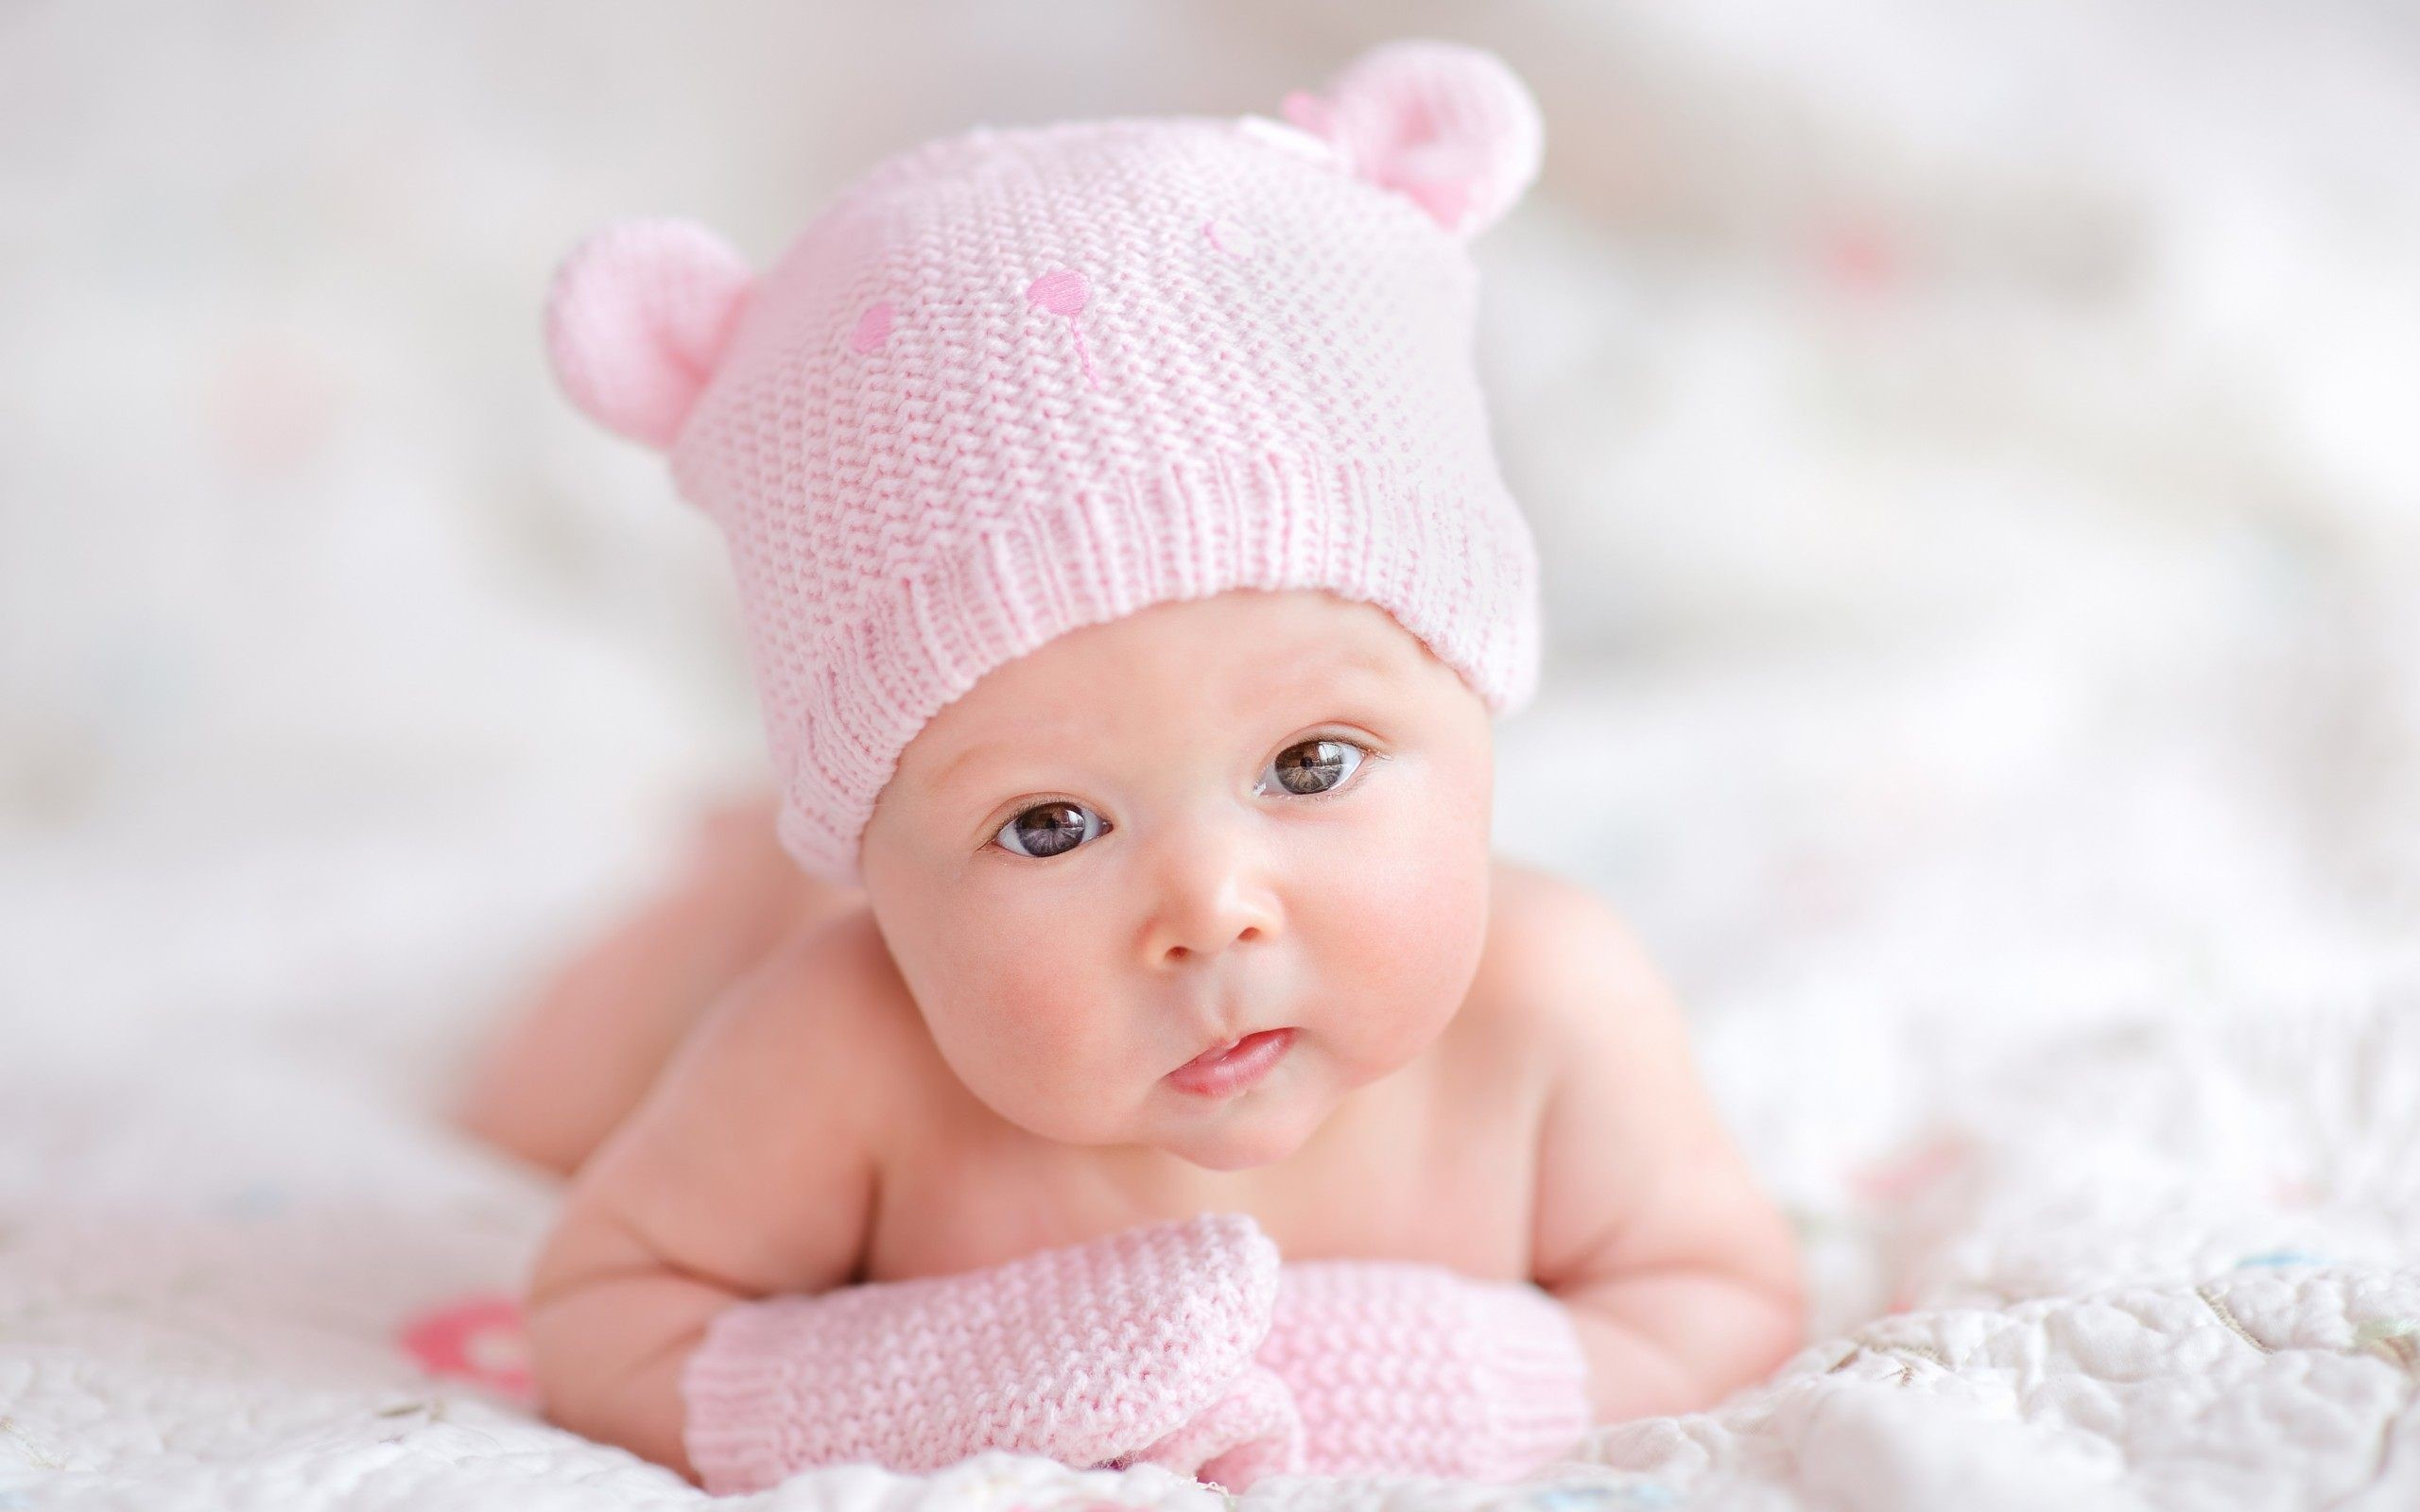 "2560x1600 3840x2160 Cute Baby HD Wallpapers | 1080p Wallpaper"">"